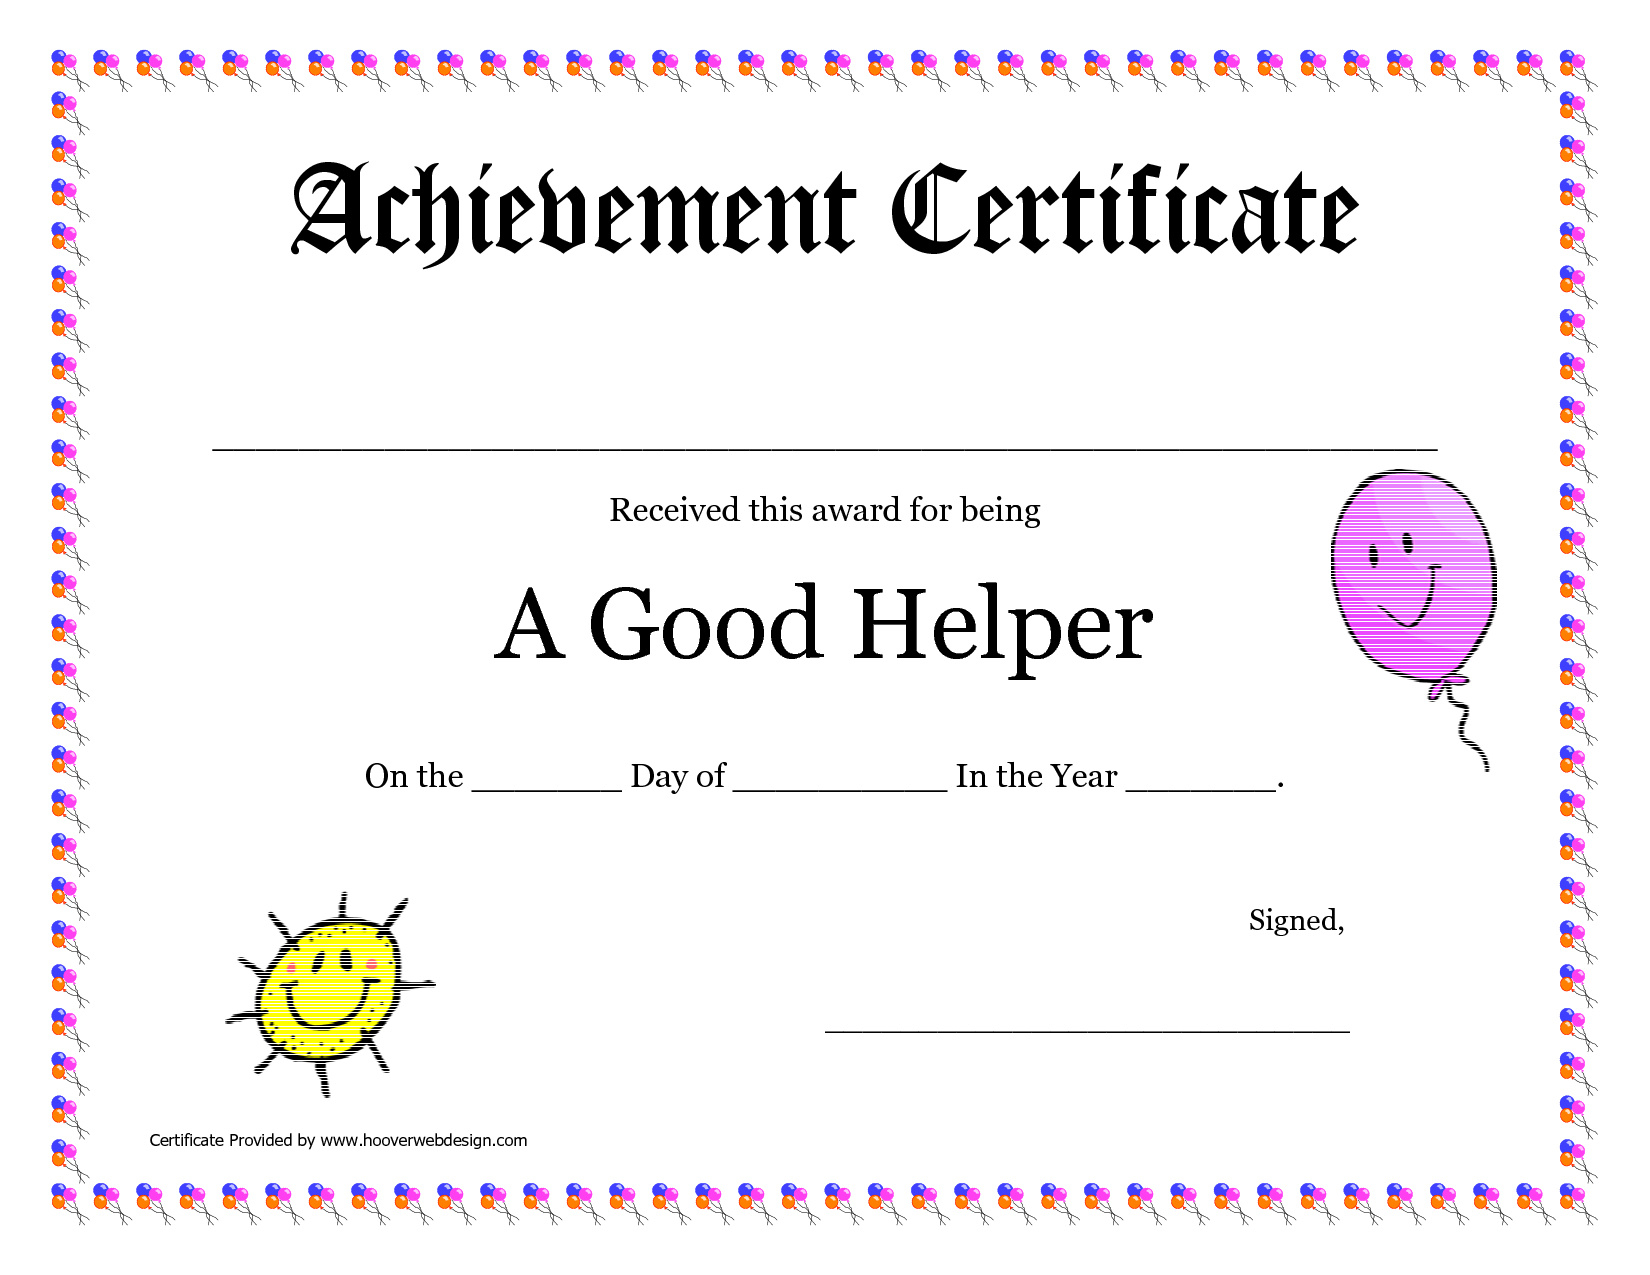 Free Printable Award Certificates For Elementary Students - Free Printable Award Certificates For Elementary Students